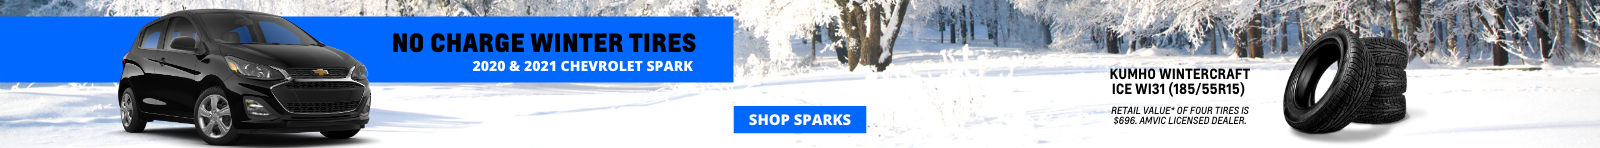 Spark Winter Tires